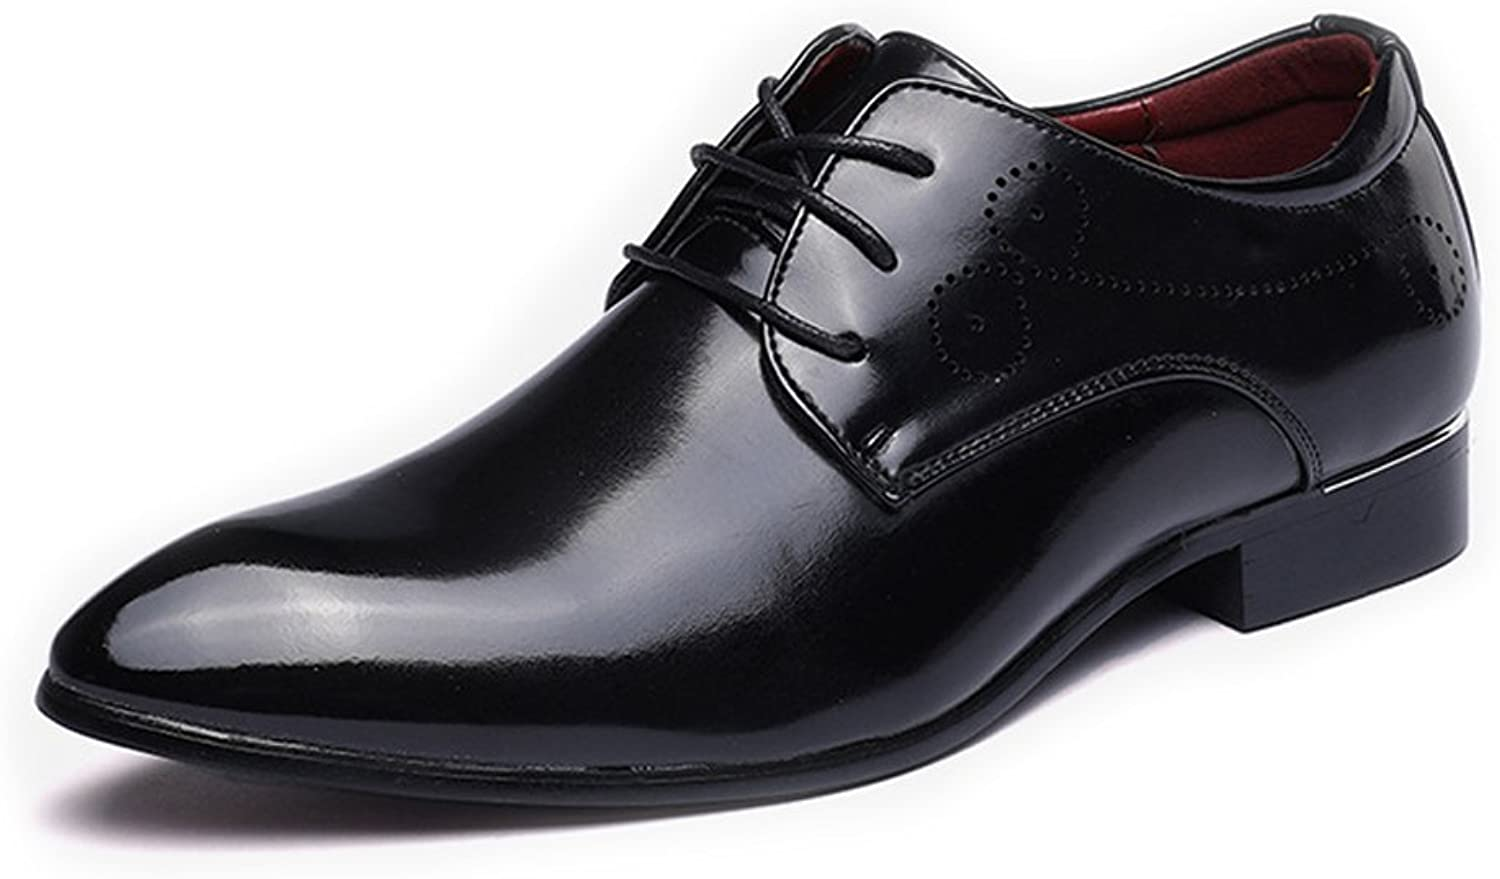 L.W.S Classic Men's Modern shoes Smooth Upper PU Leather Lace Up Pointed Toe Breathable Lined Oxfords